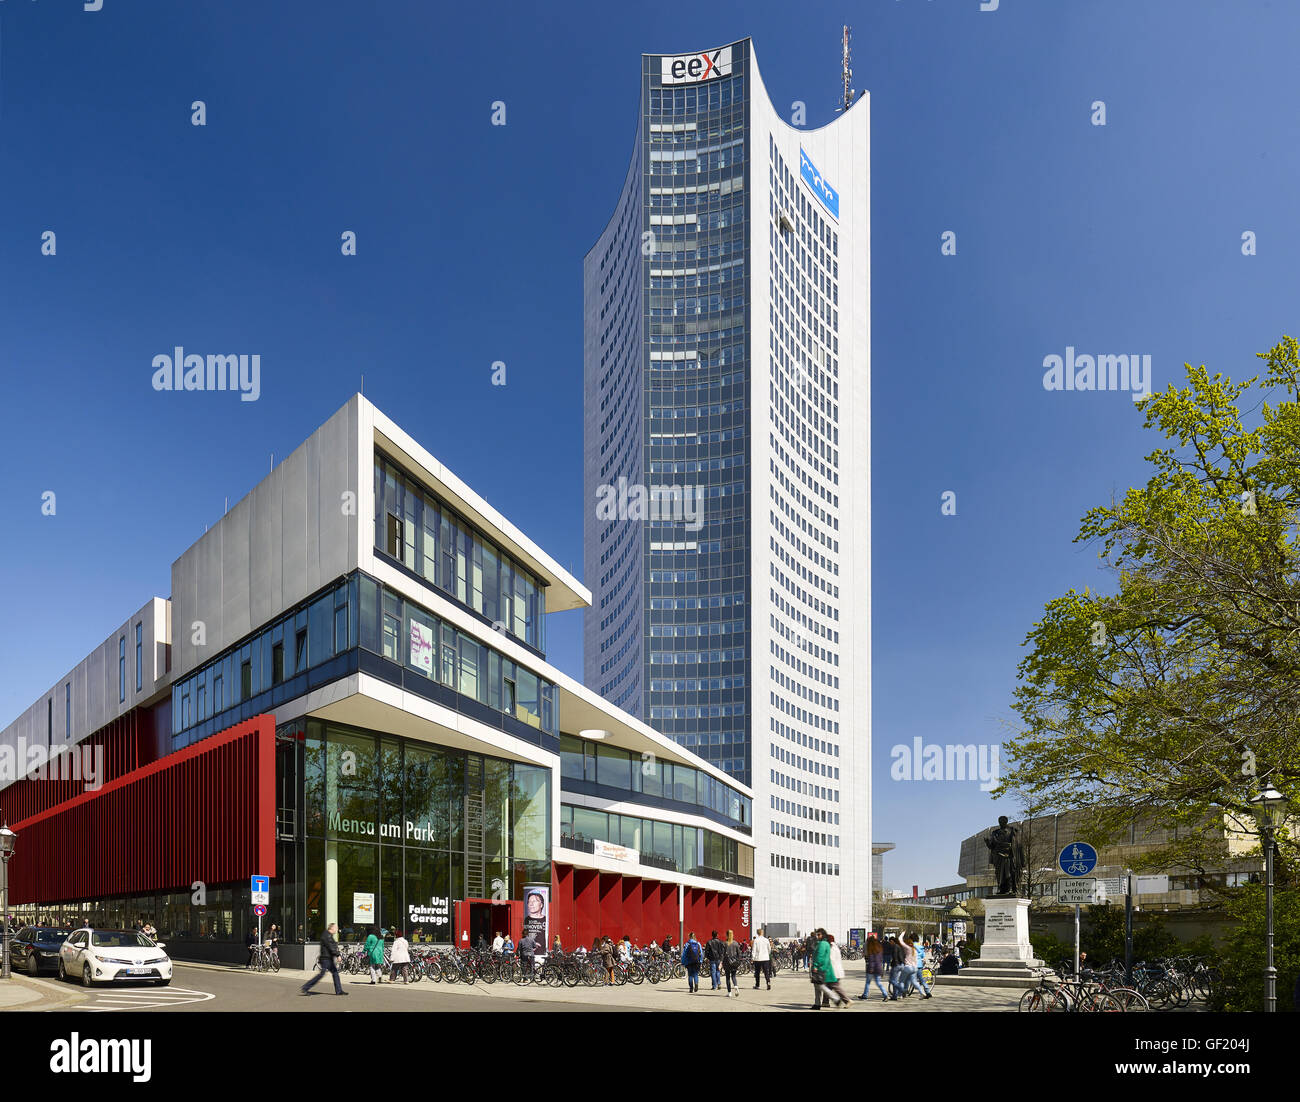 Mensa am Park with City Hochhaus in Leipzig, Germany - Stock Image